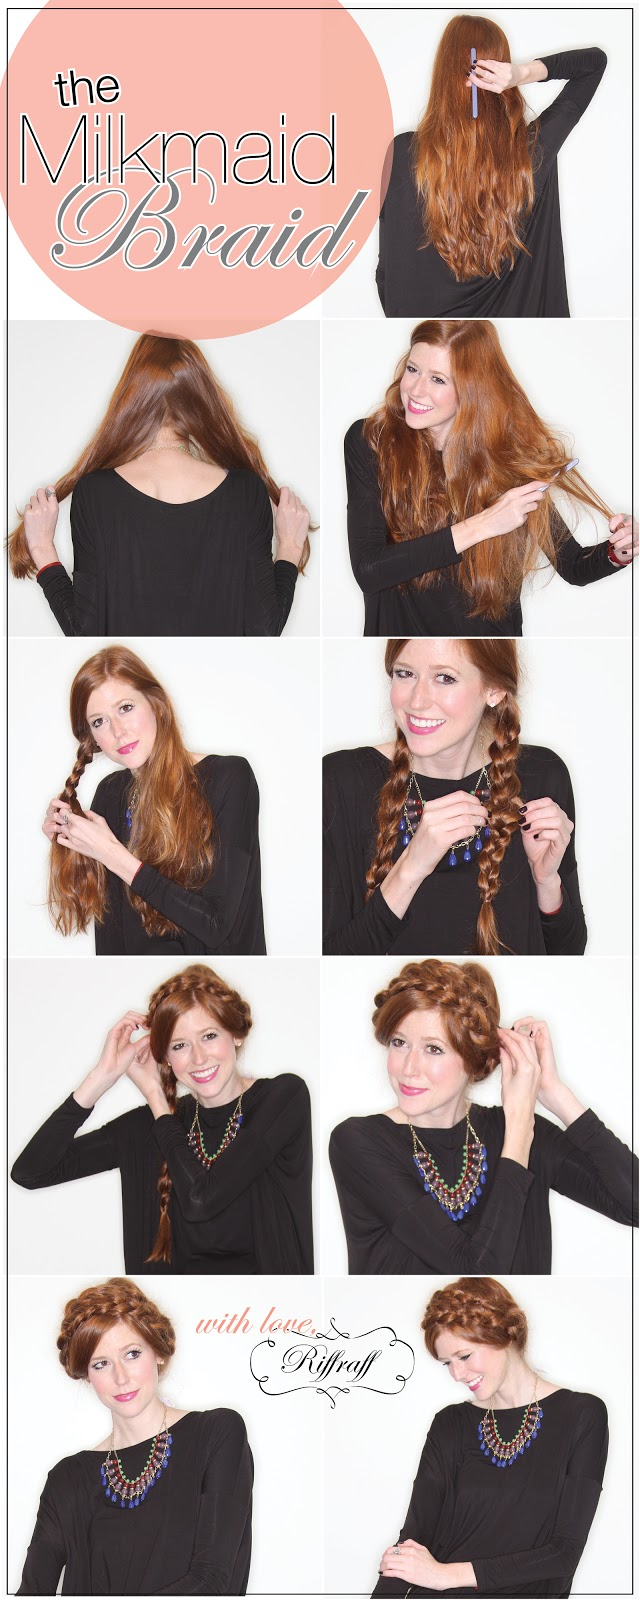 Milkmaid Braid tutorial from Riffraff